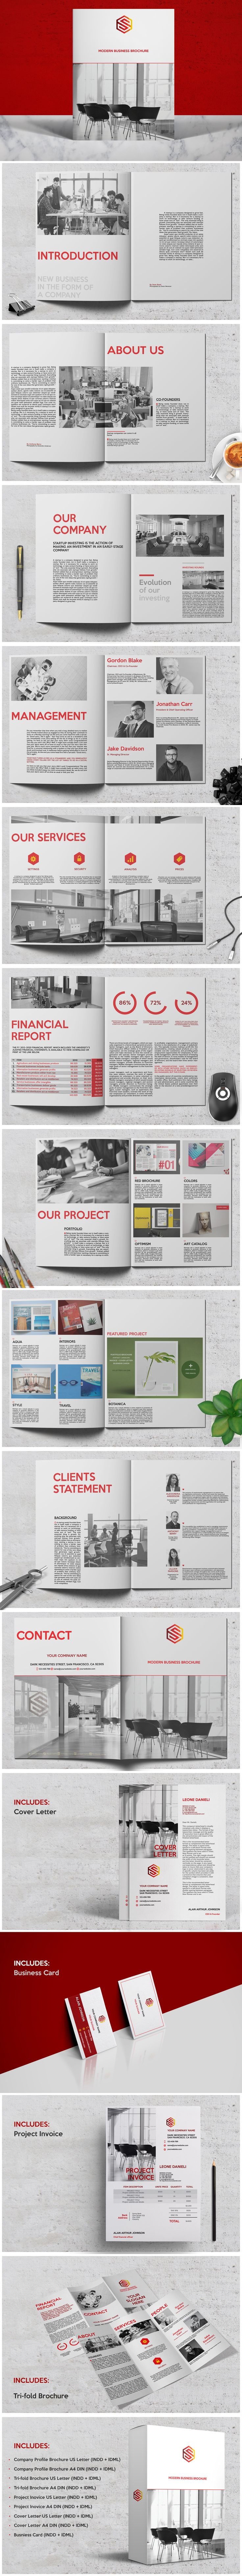 Red - Business Brochure + Tri-fold Brochure + Project Inovice + Cover Letter + Busniess Card. Templates A4 & US Letter